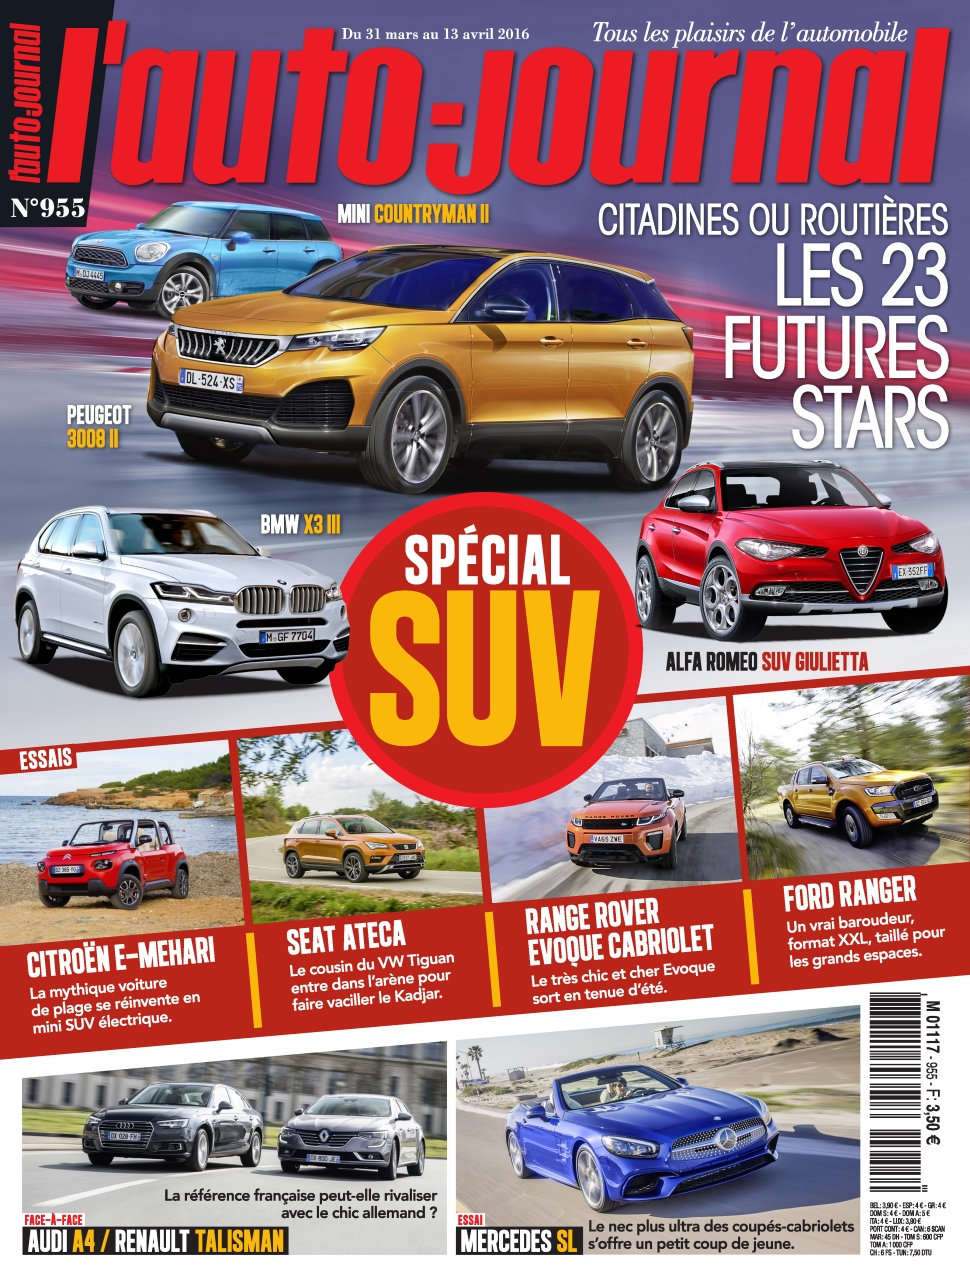 L'Auto-Journal N°955 - 31 Mars au 13 Avril 2016